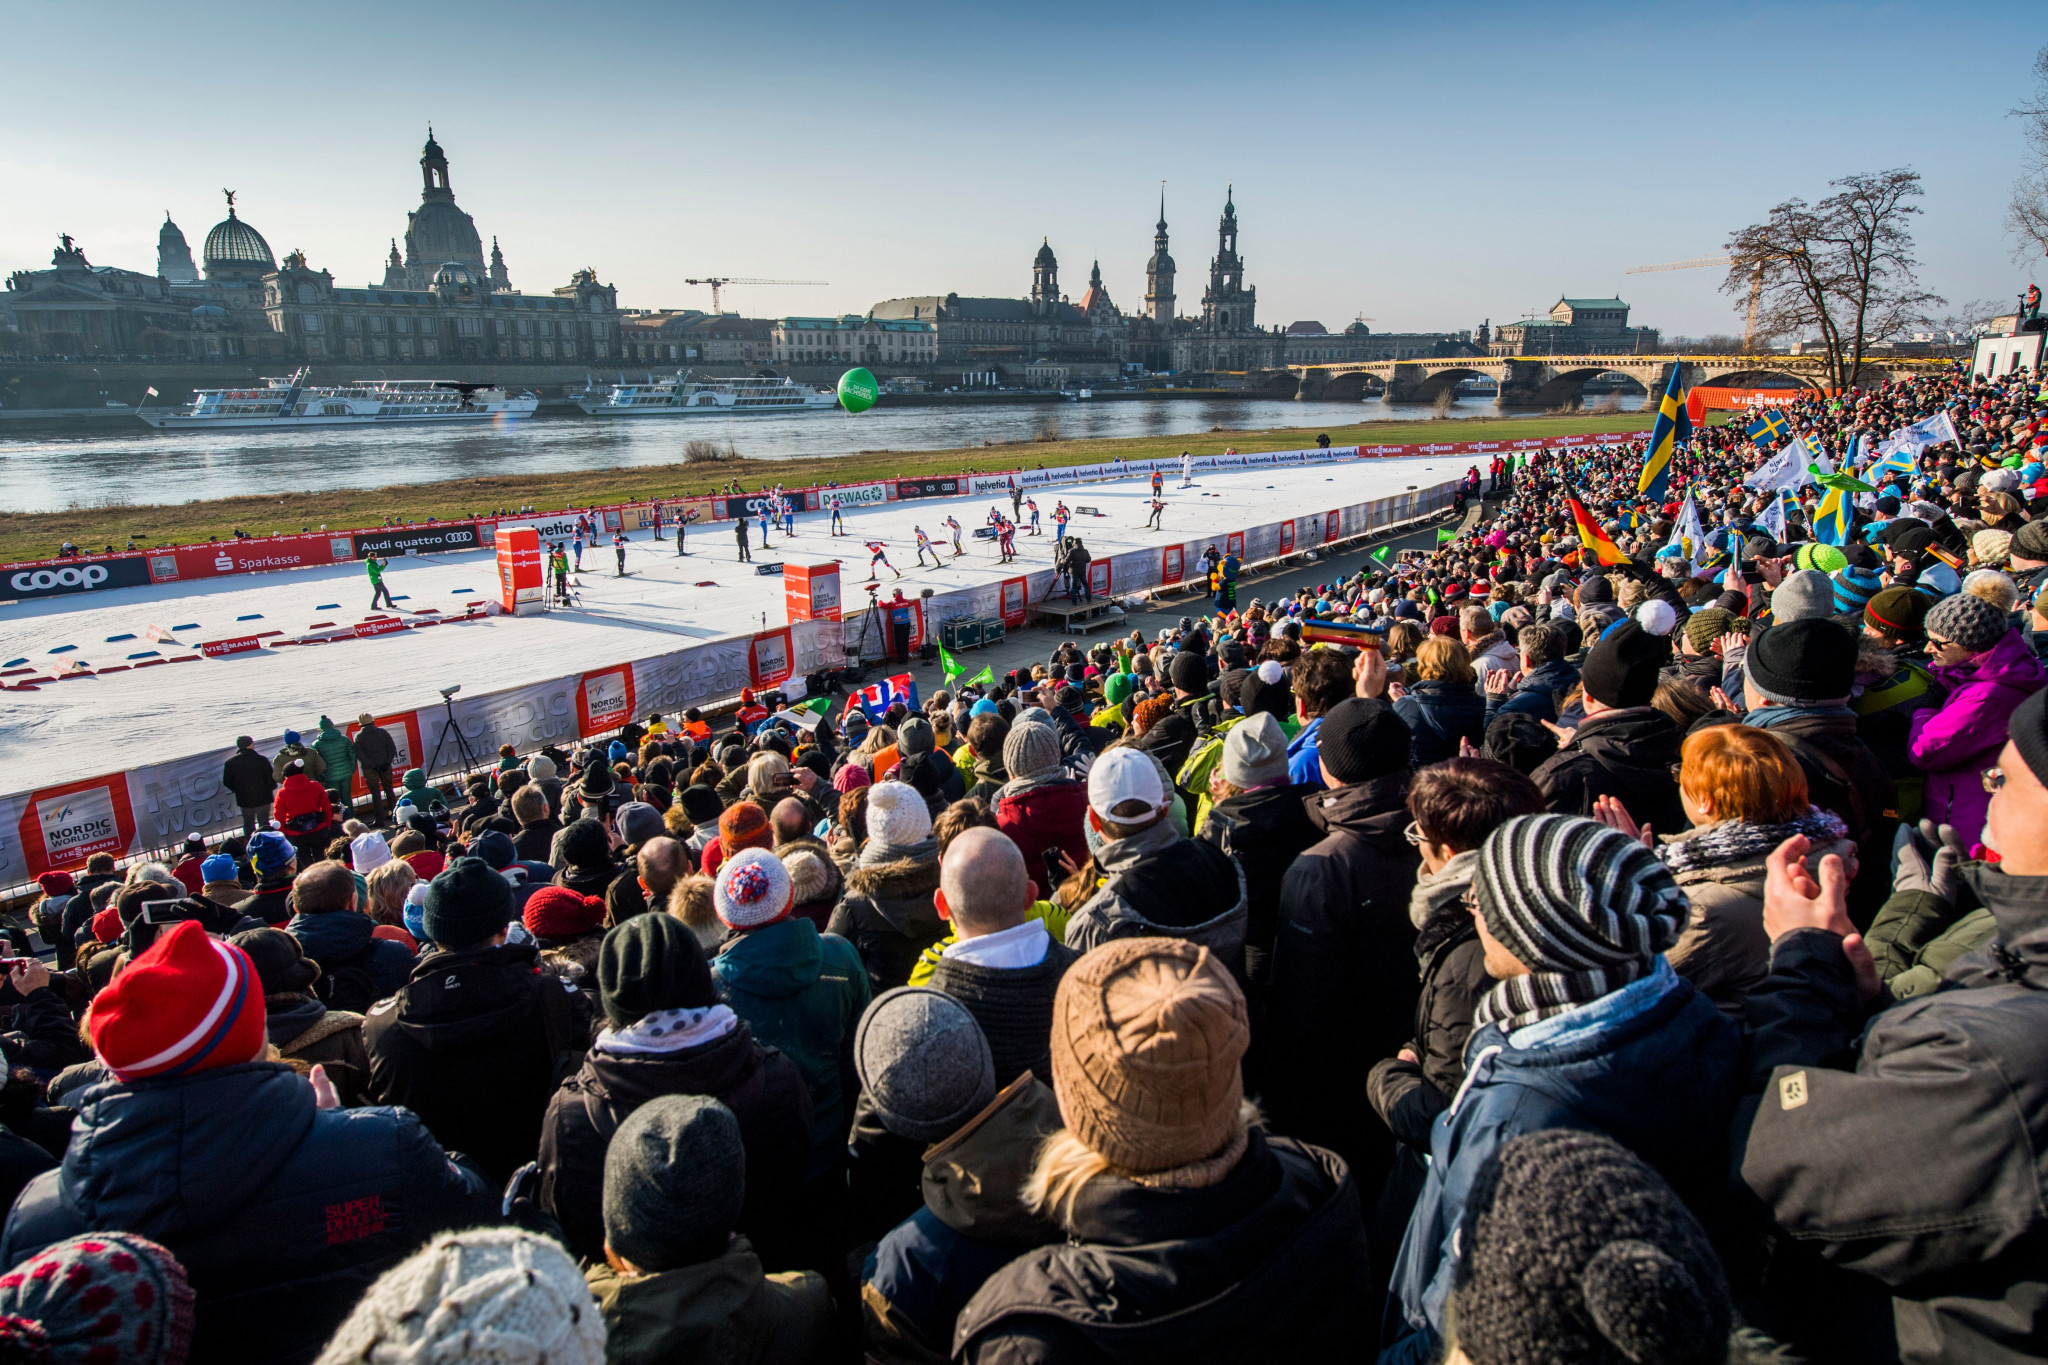 Norwegian pair hoping to hit right notes in front of Semperoper opera house as FIS Cross-Country World Cup heads to Dresden